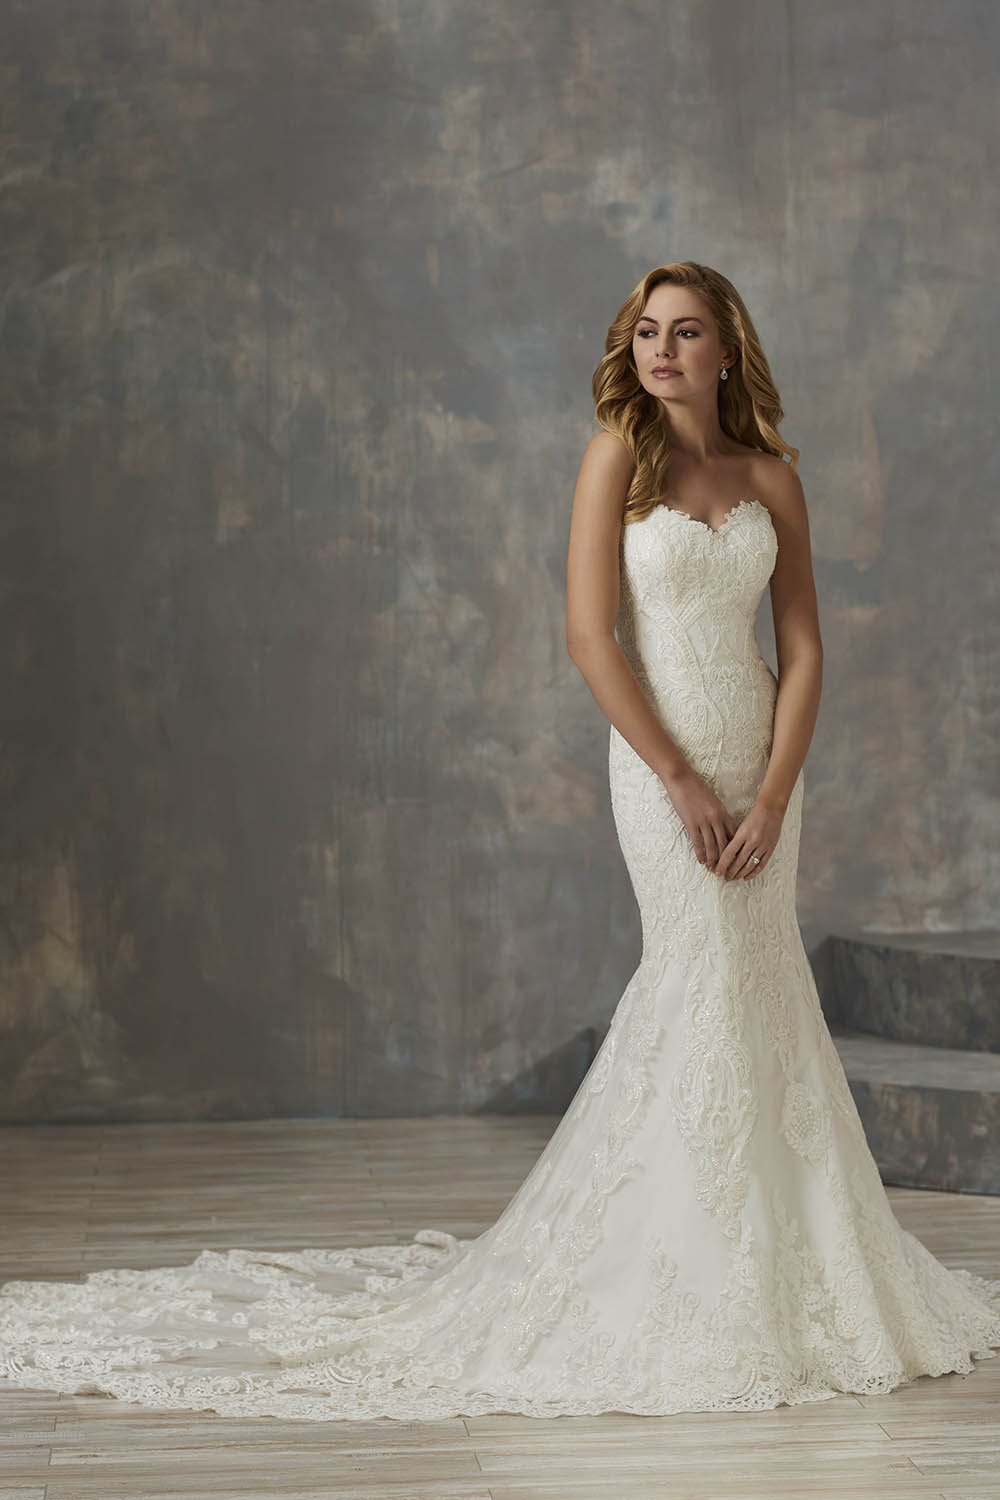 simple lace wedding dress no beading sweetheart neckline and long train